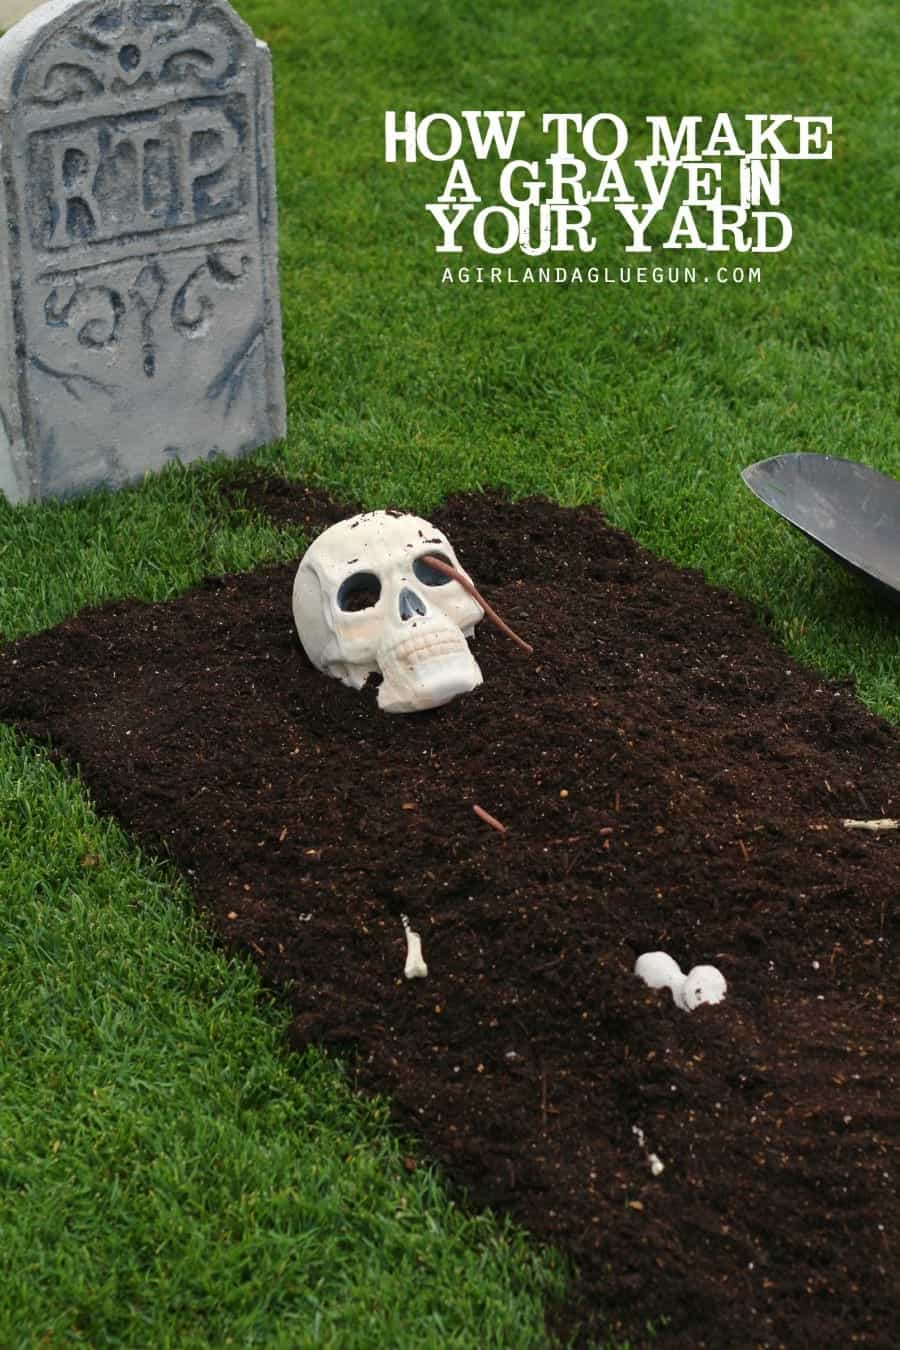 how to make a grave in your yard